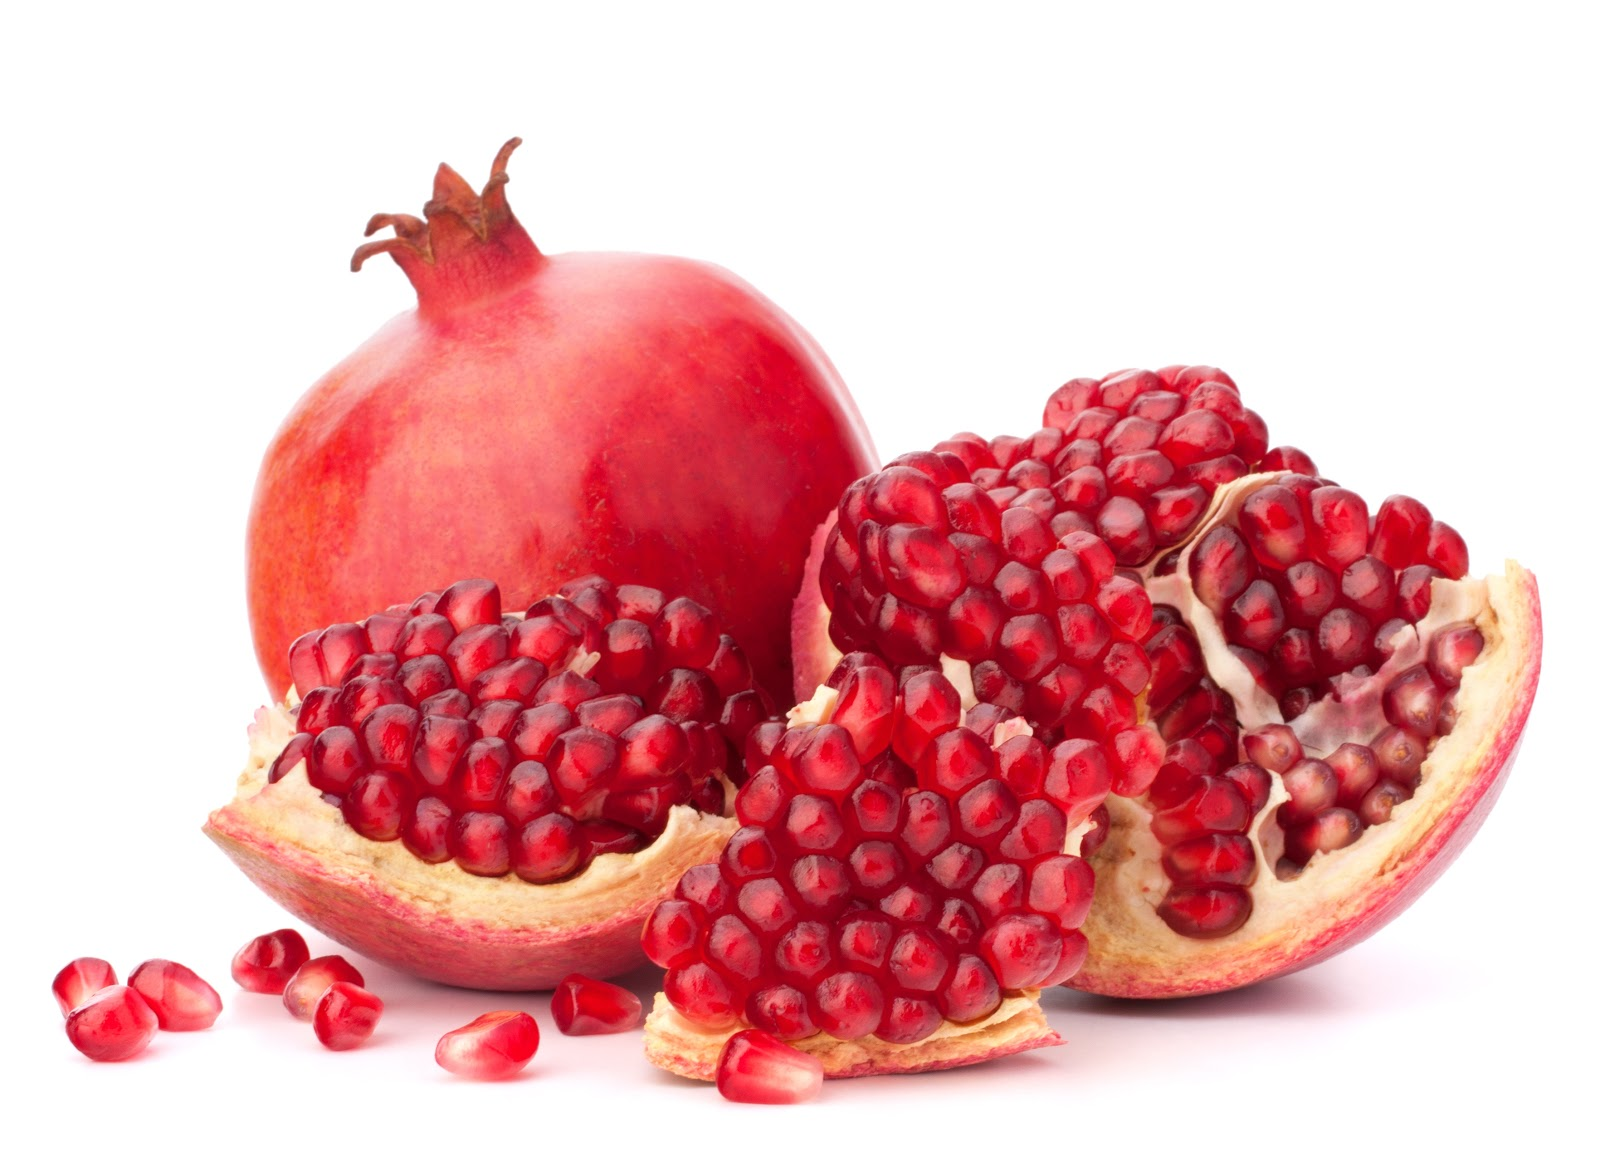 Pomegranate Ripe Seeds 314.55 Kb